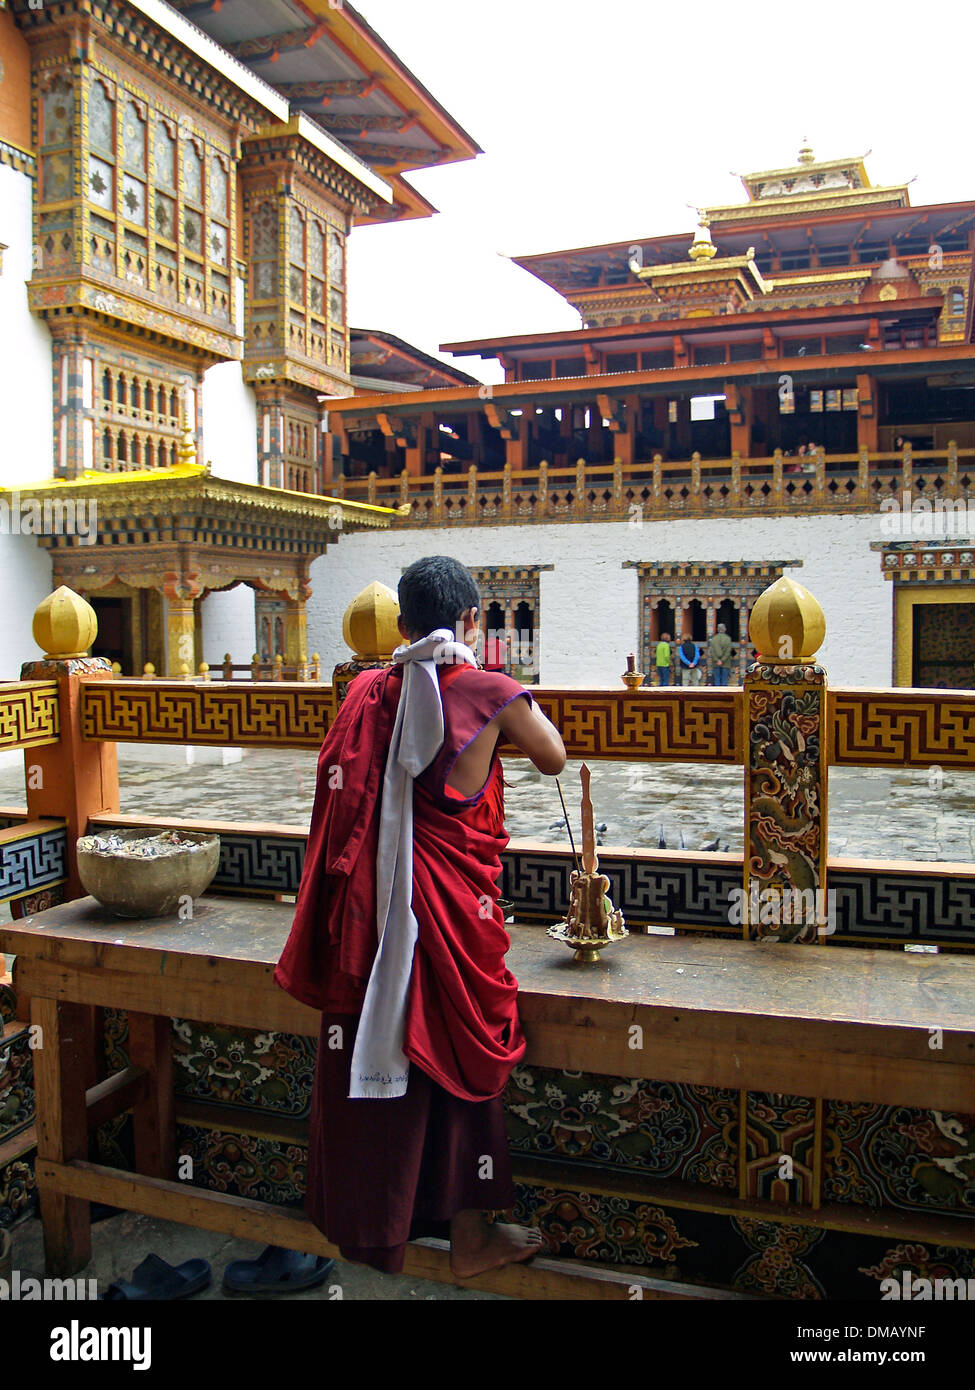 A young monk does a devotional in the courtyard of the Punakha Dzong,Bhutan - Stock Image